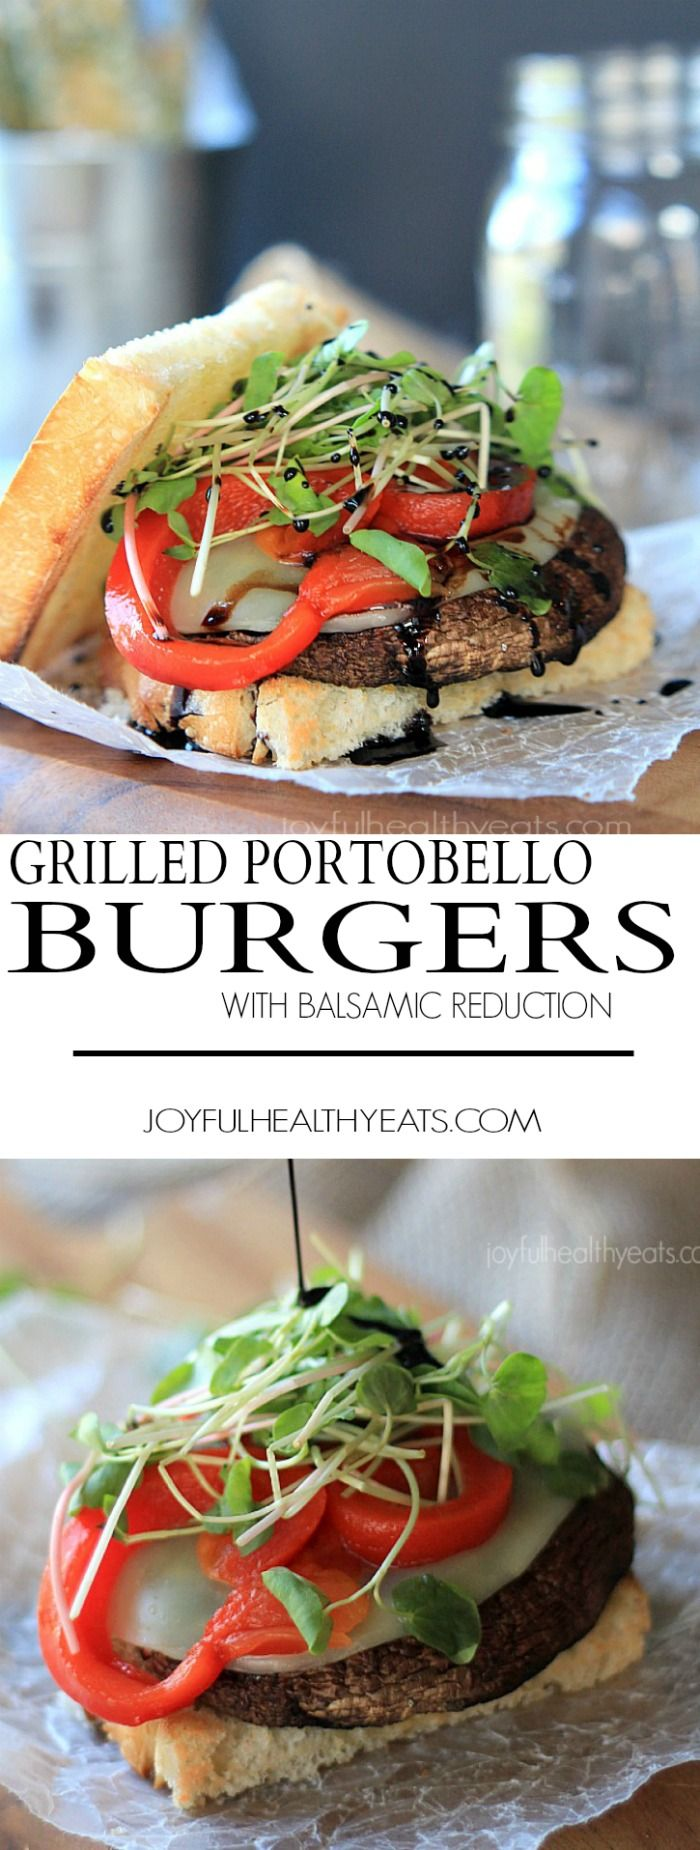 """Seriously the best """"faux burger"""" I have ever had! Grilled Portobello Burgers topped with provolone cheese, roasted red peppers, sprouts, and Balsamic Reduction   joyfulhealthyeats.com #vegetarian"""